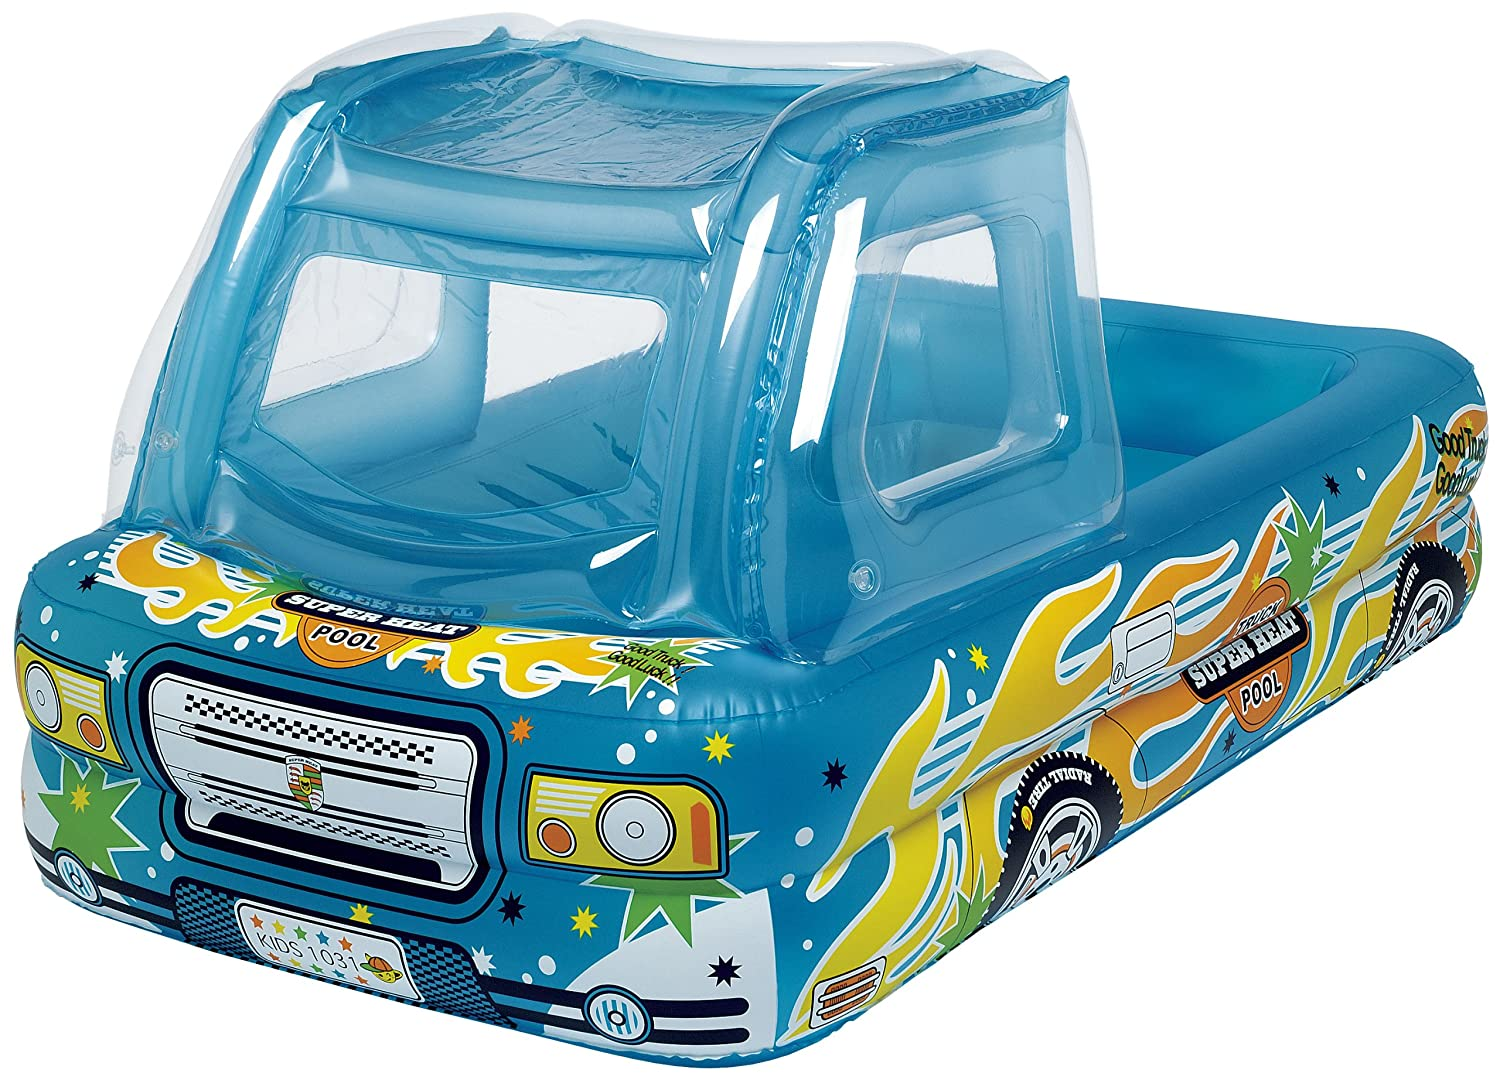 Pickup truck Pool (japan import) bestellen